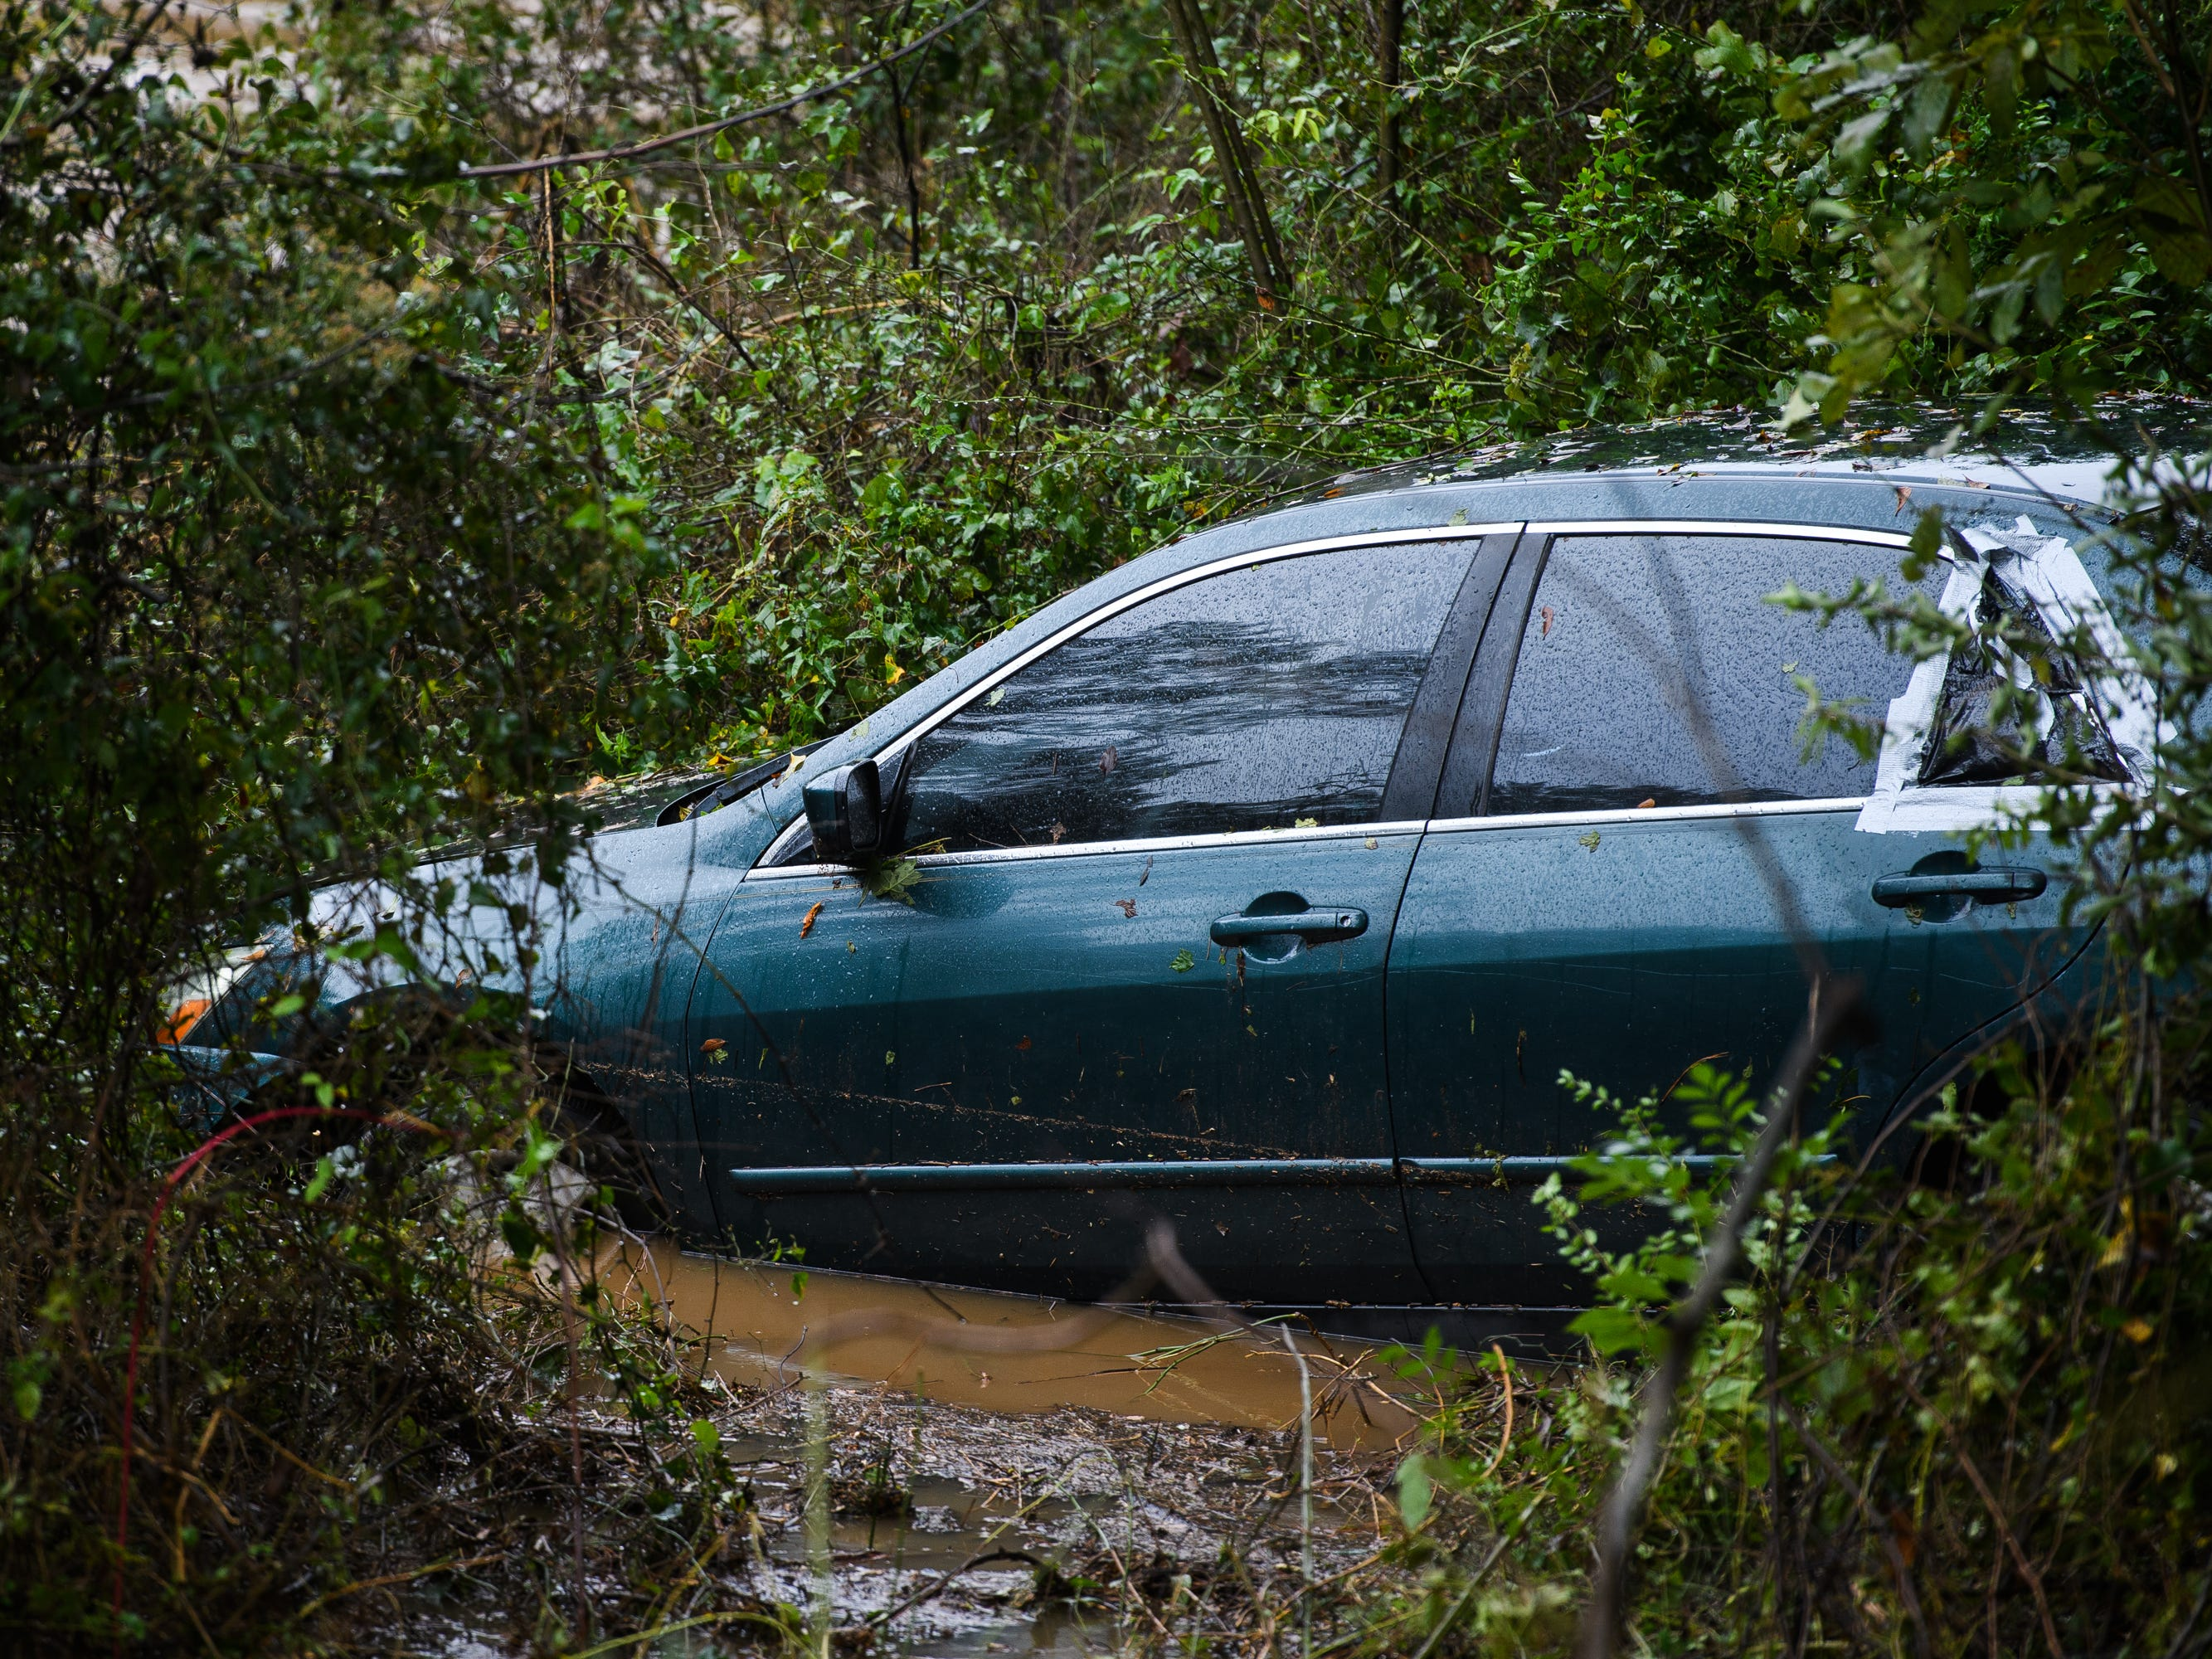 A vehicle is partially submerged in the Reedy River along Parkins Mills Road on Thursday, Oct. 11, 2018.